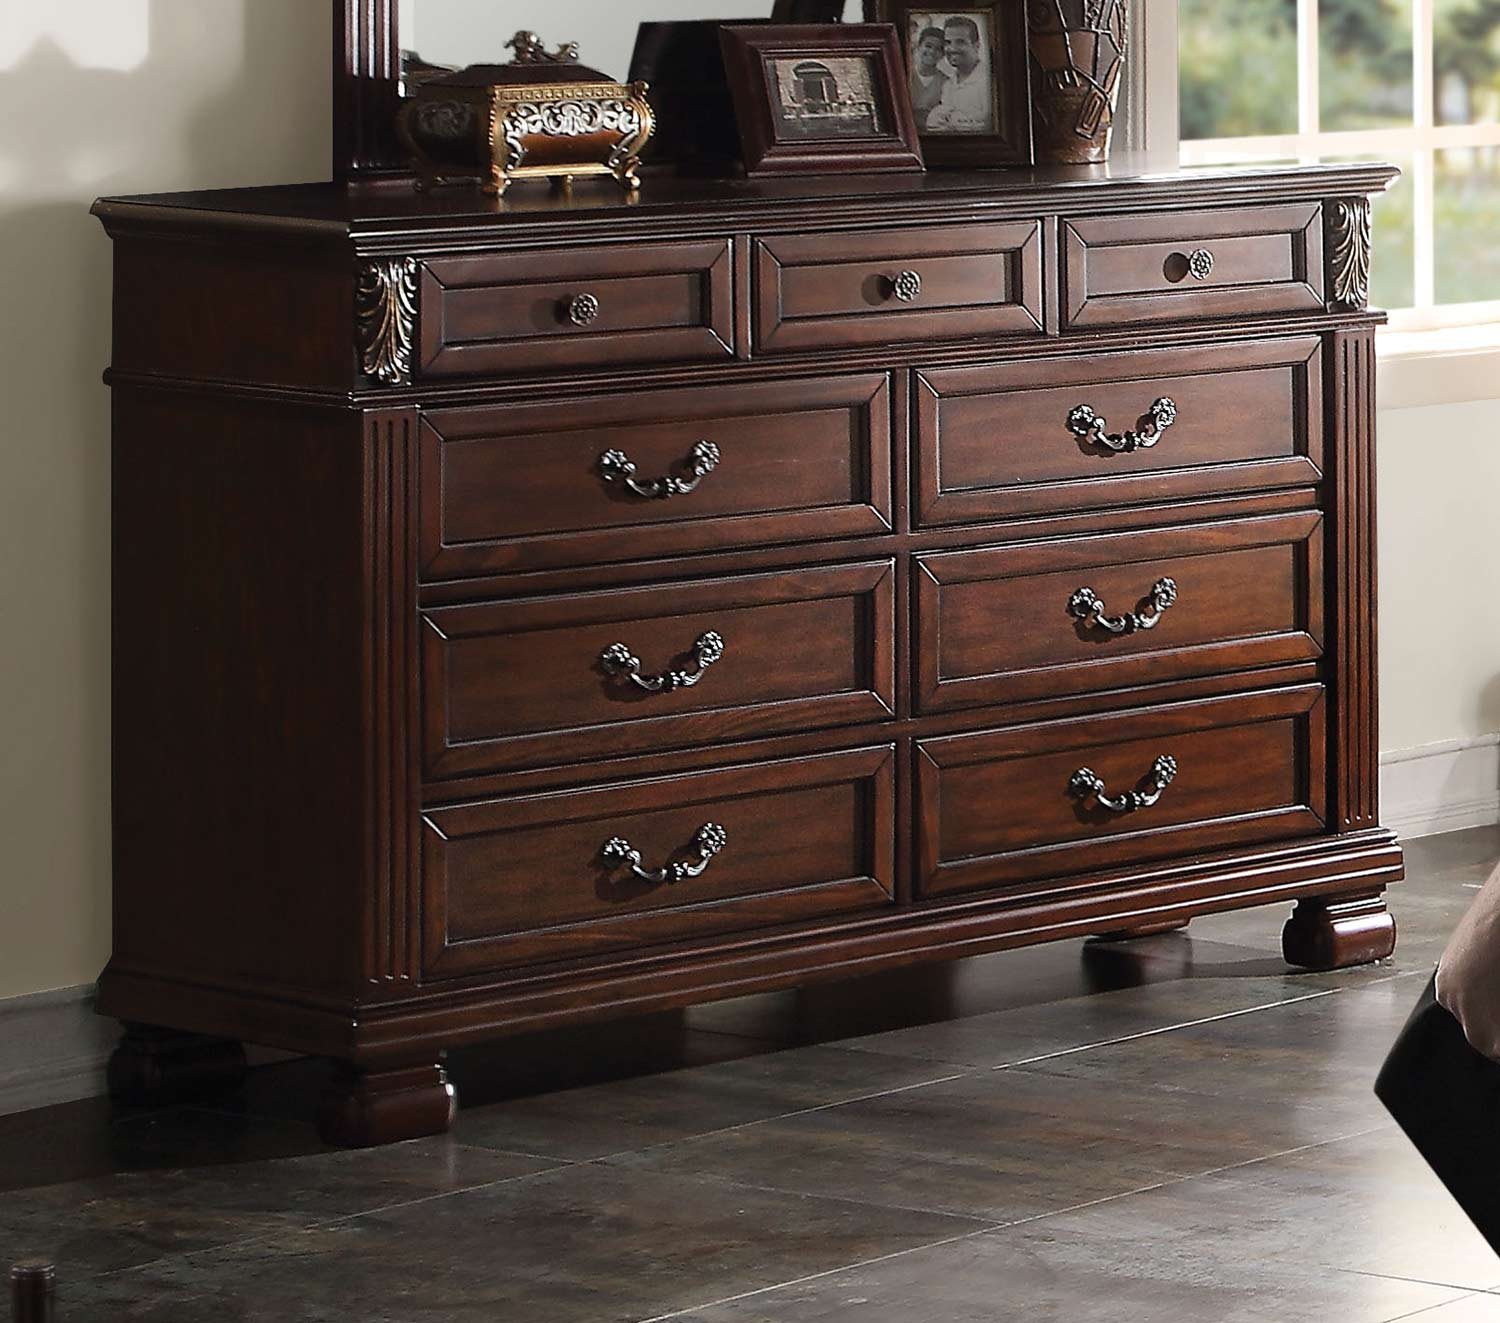 Acme Manfred Dresser - Dark Walnut